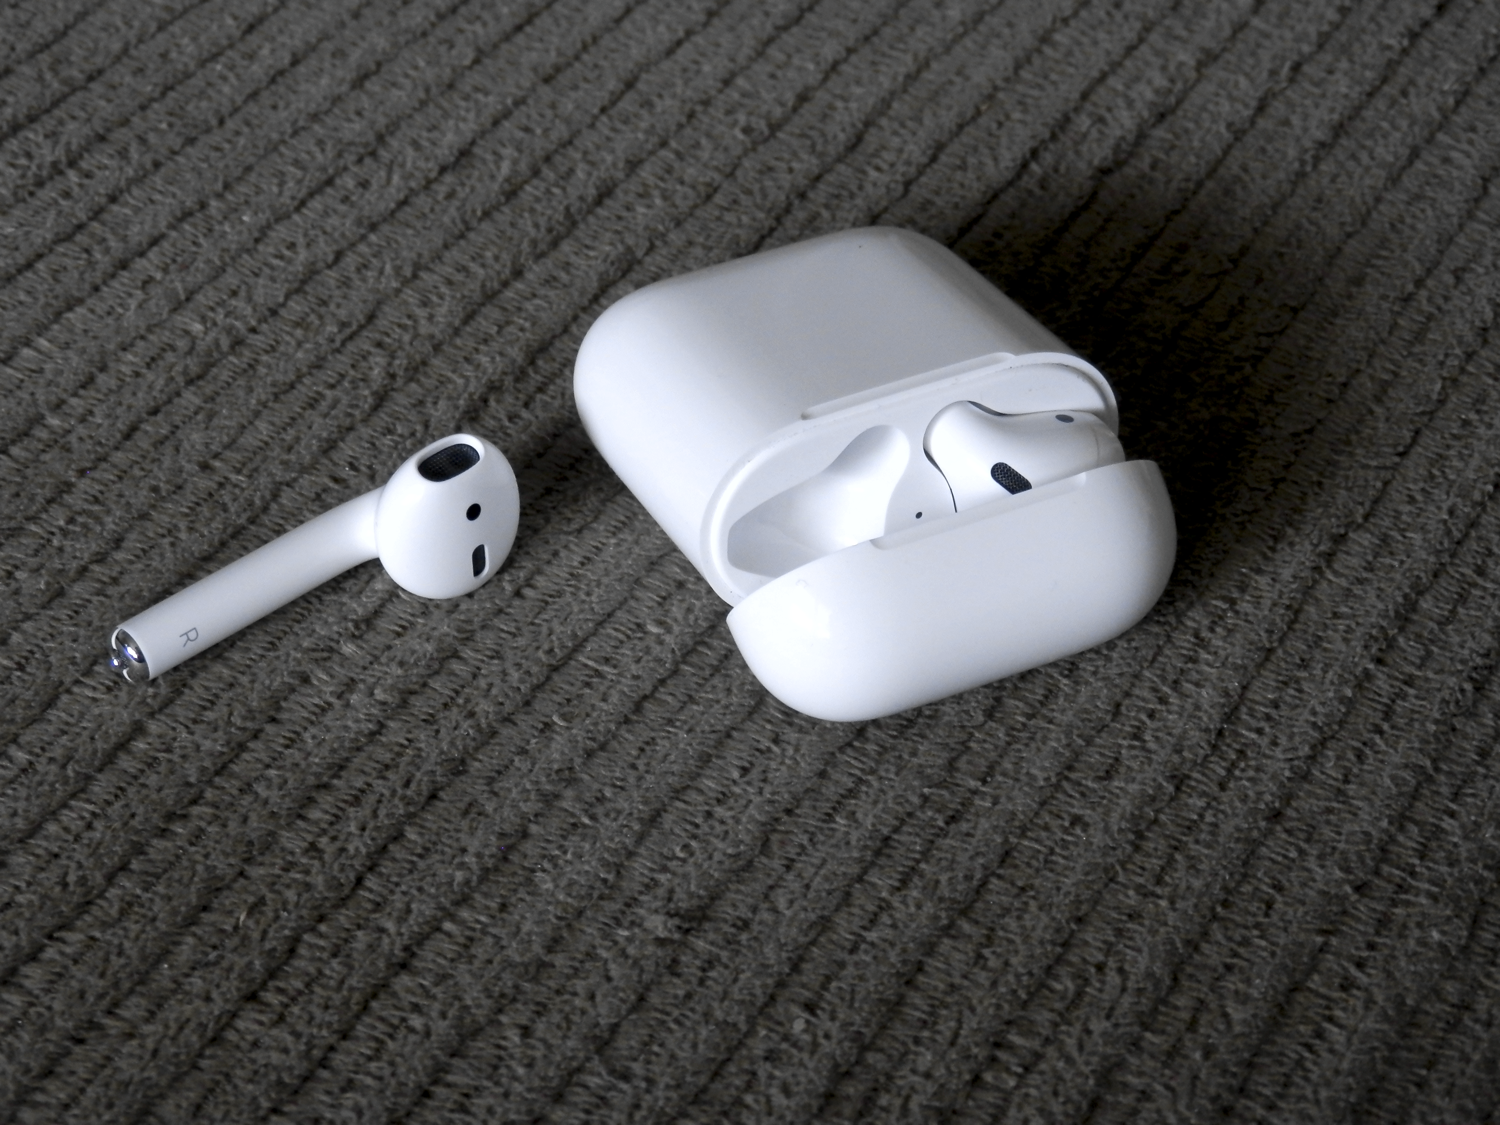 Apple Updates Airpods Firmware To Version 3 5 1